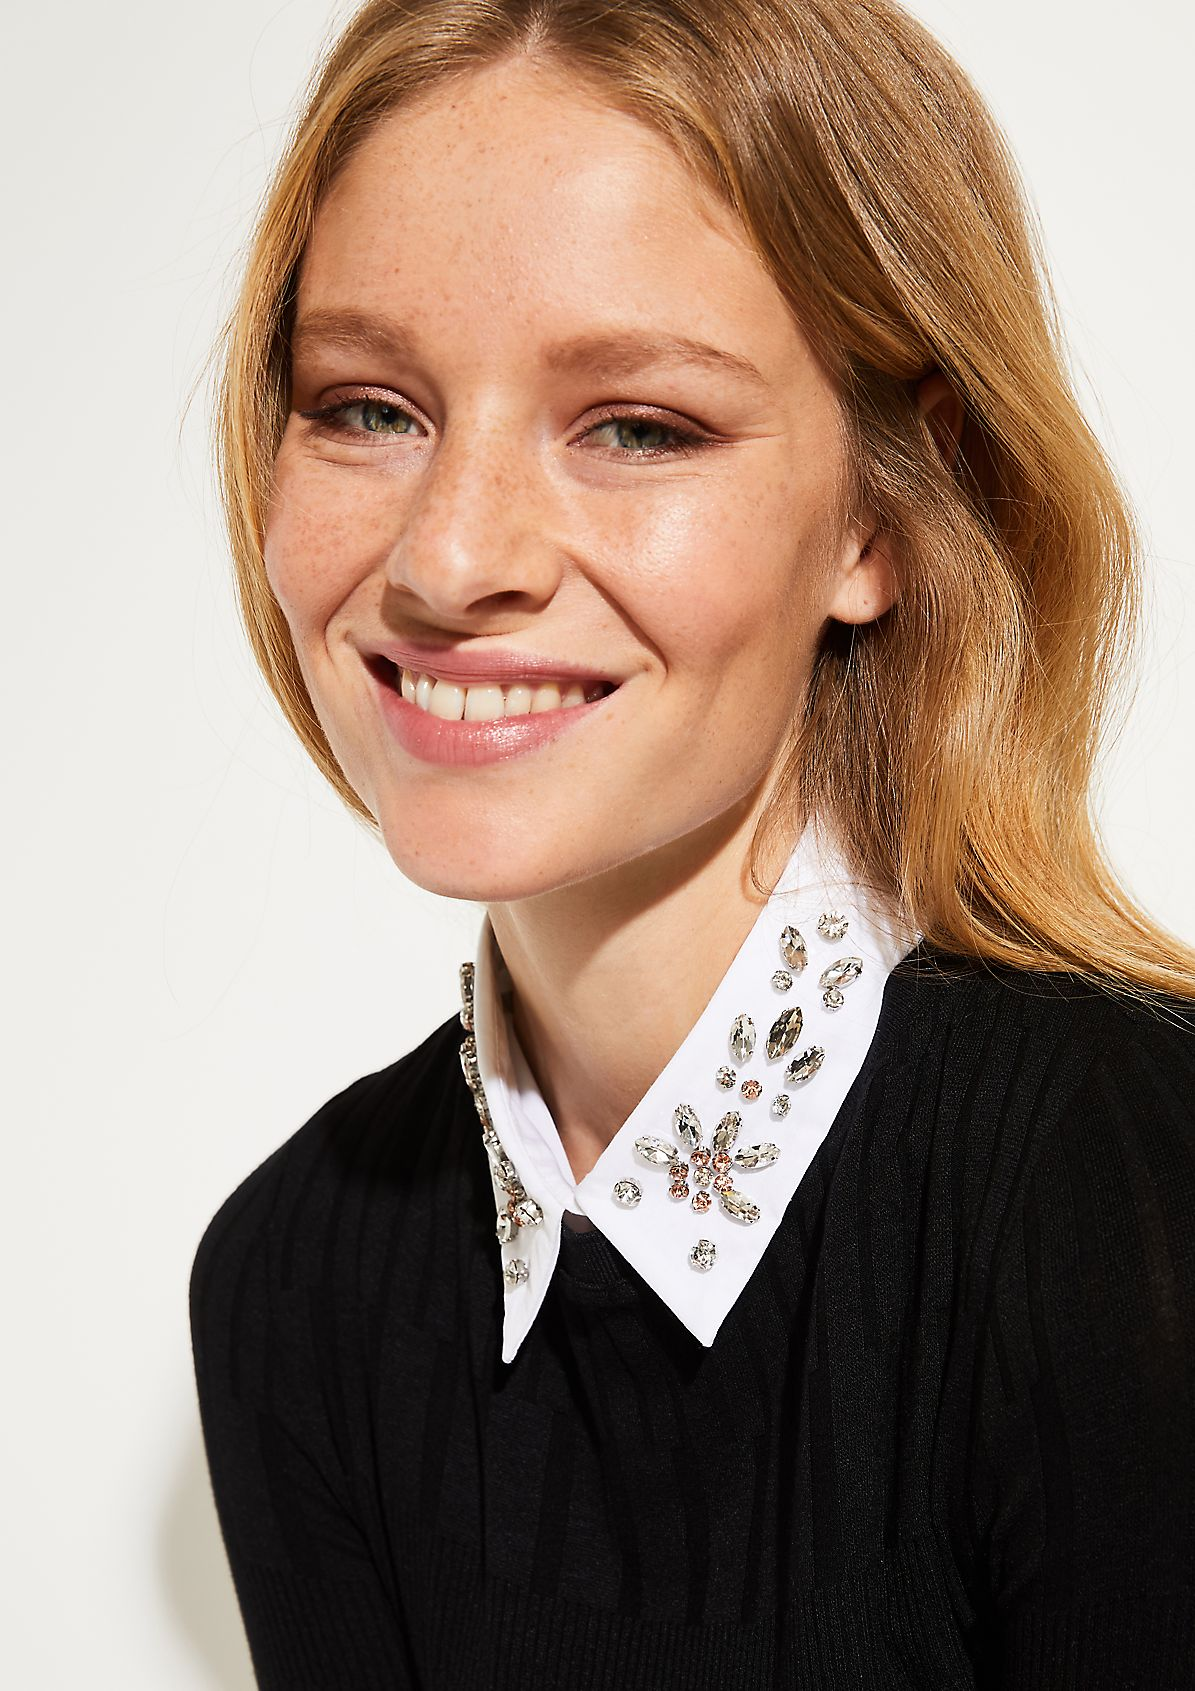 Insert collar with sparkling gemstone embellishments from comma